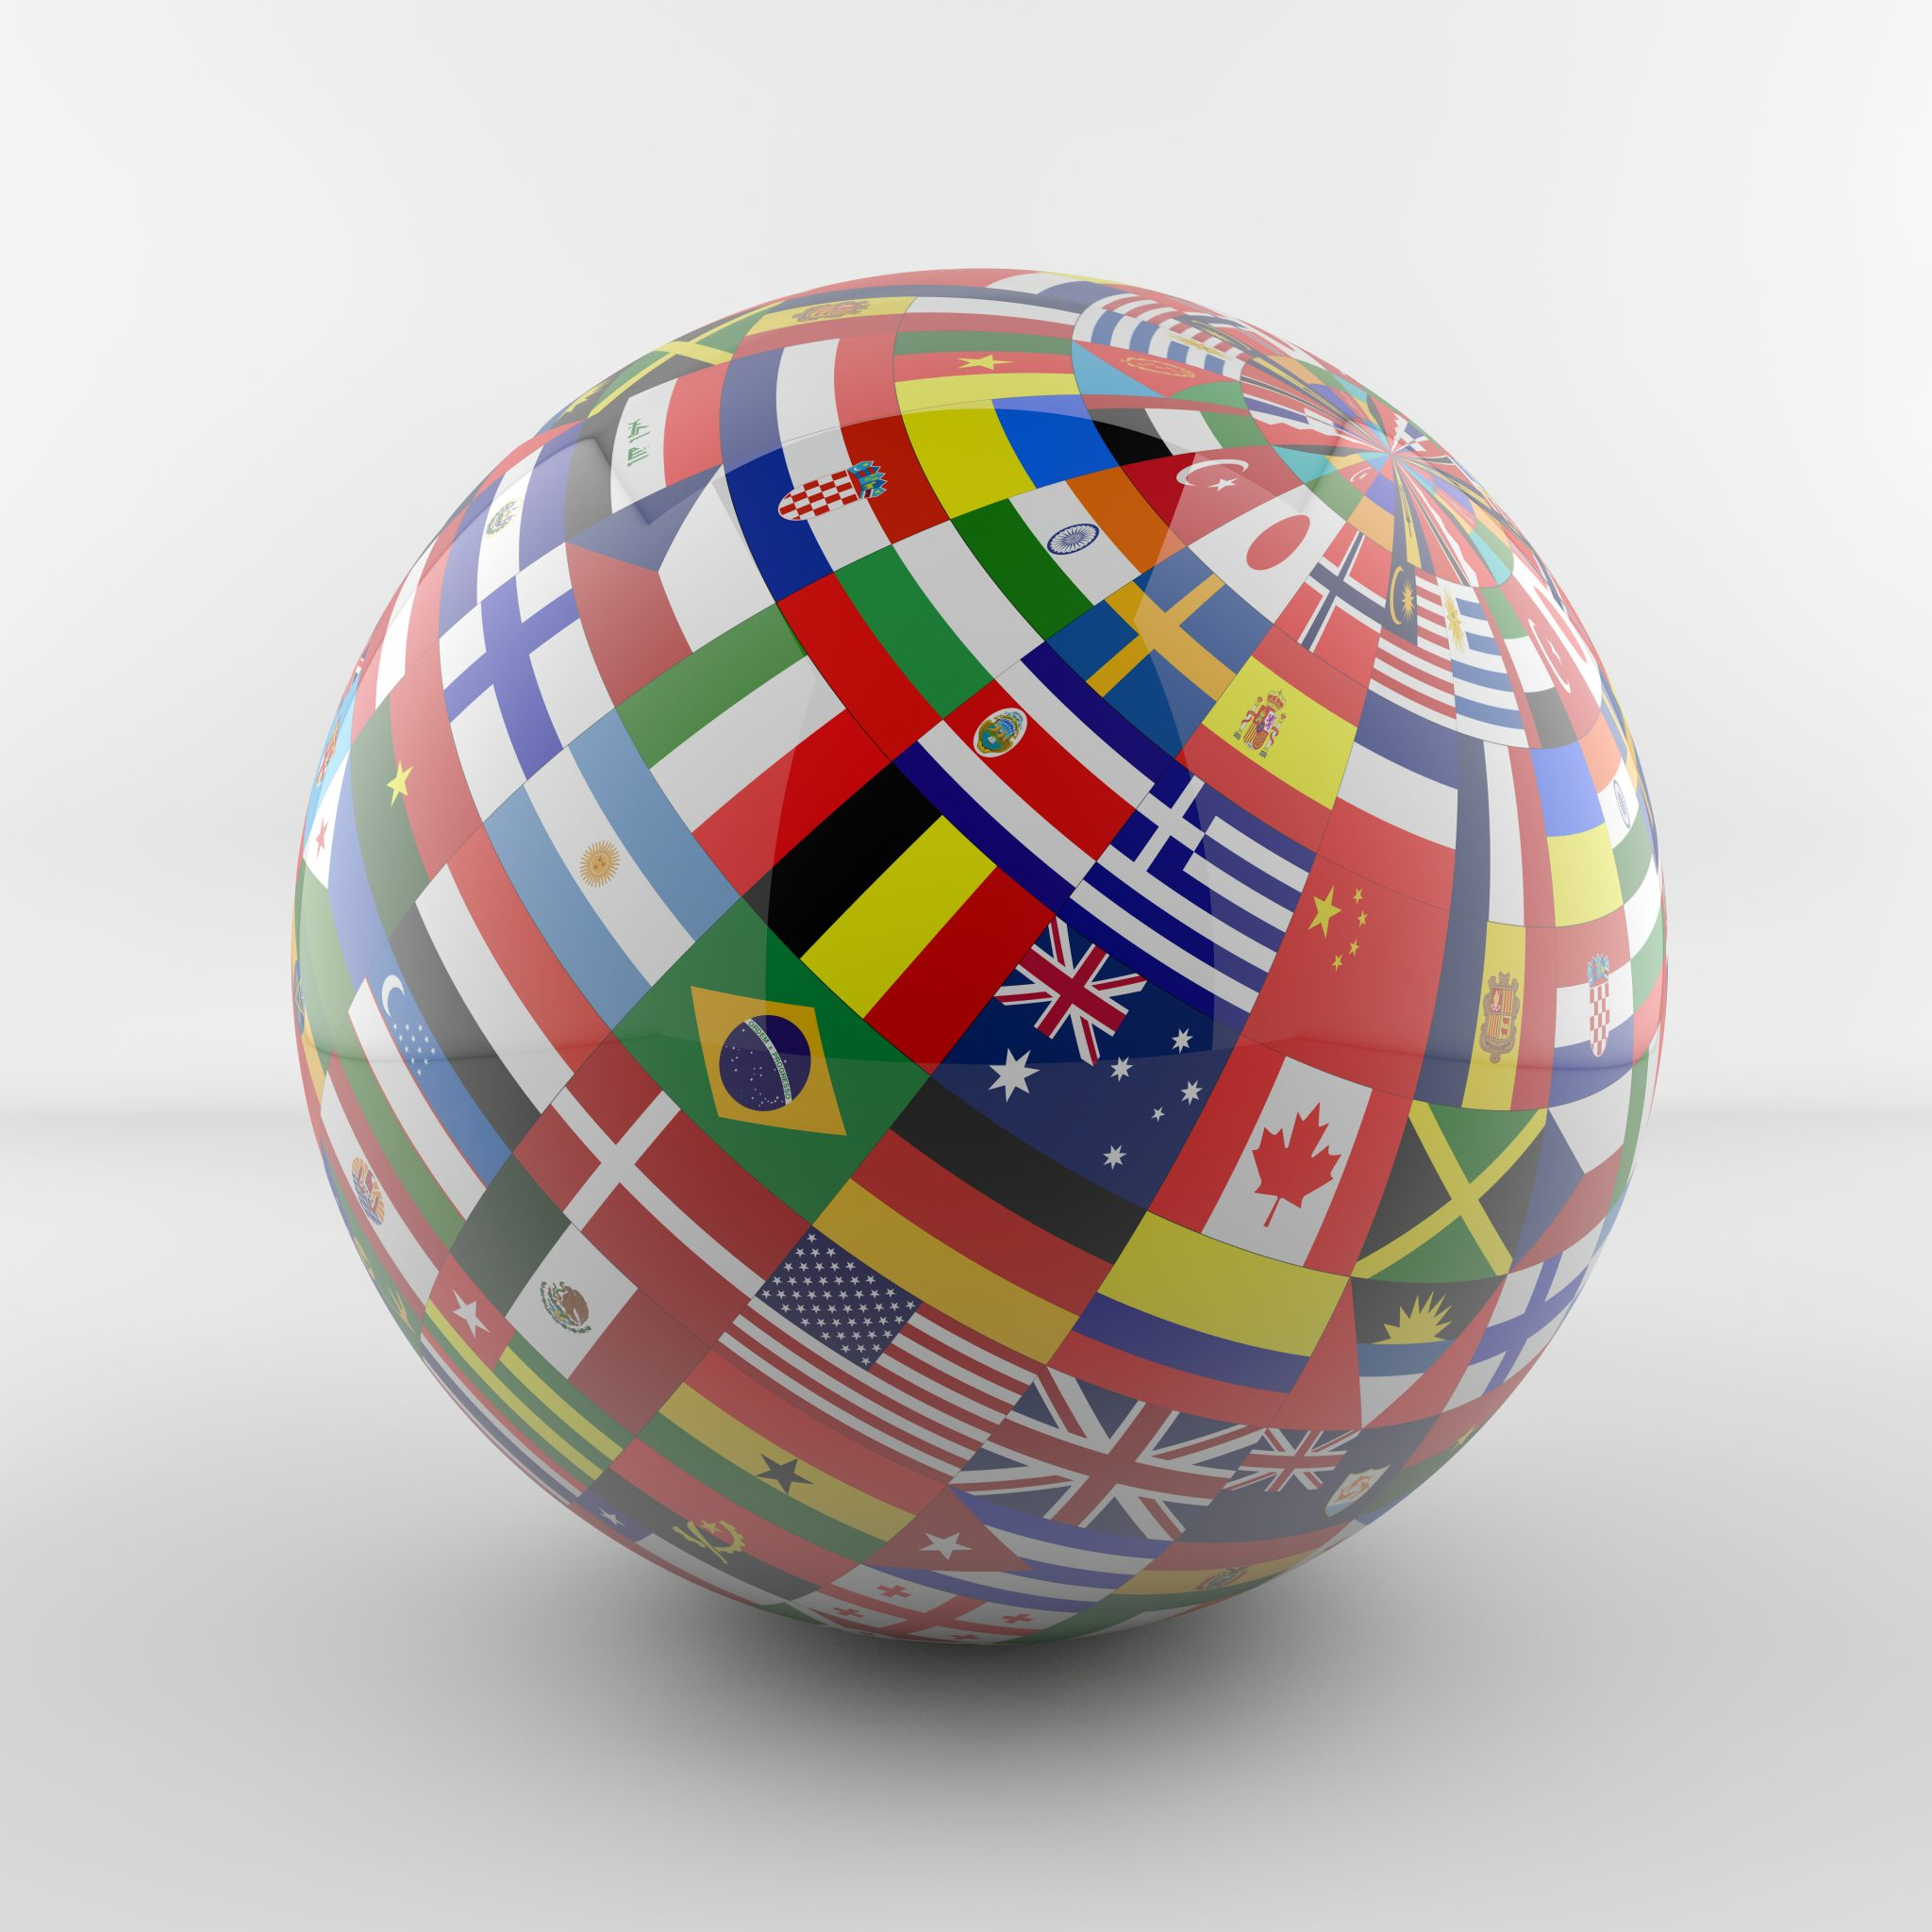 football with country flags on it